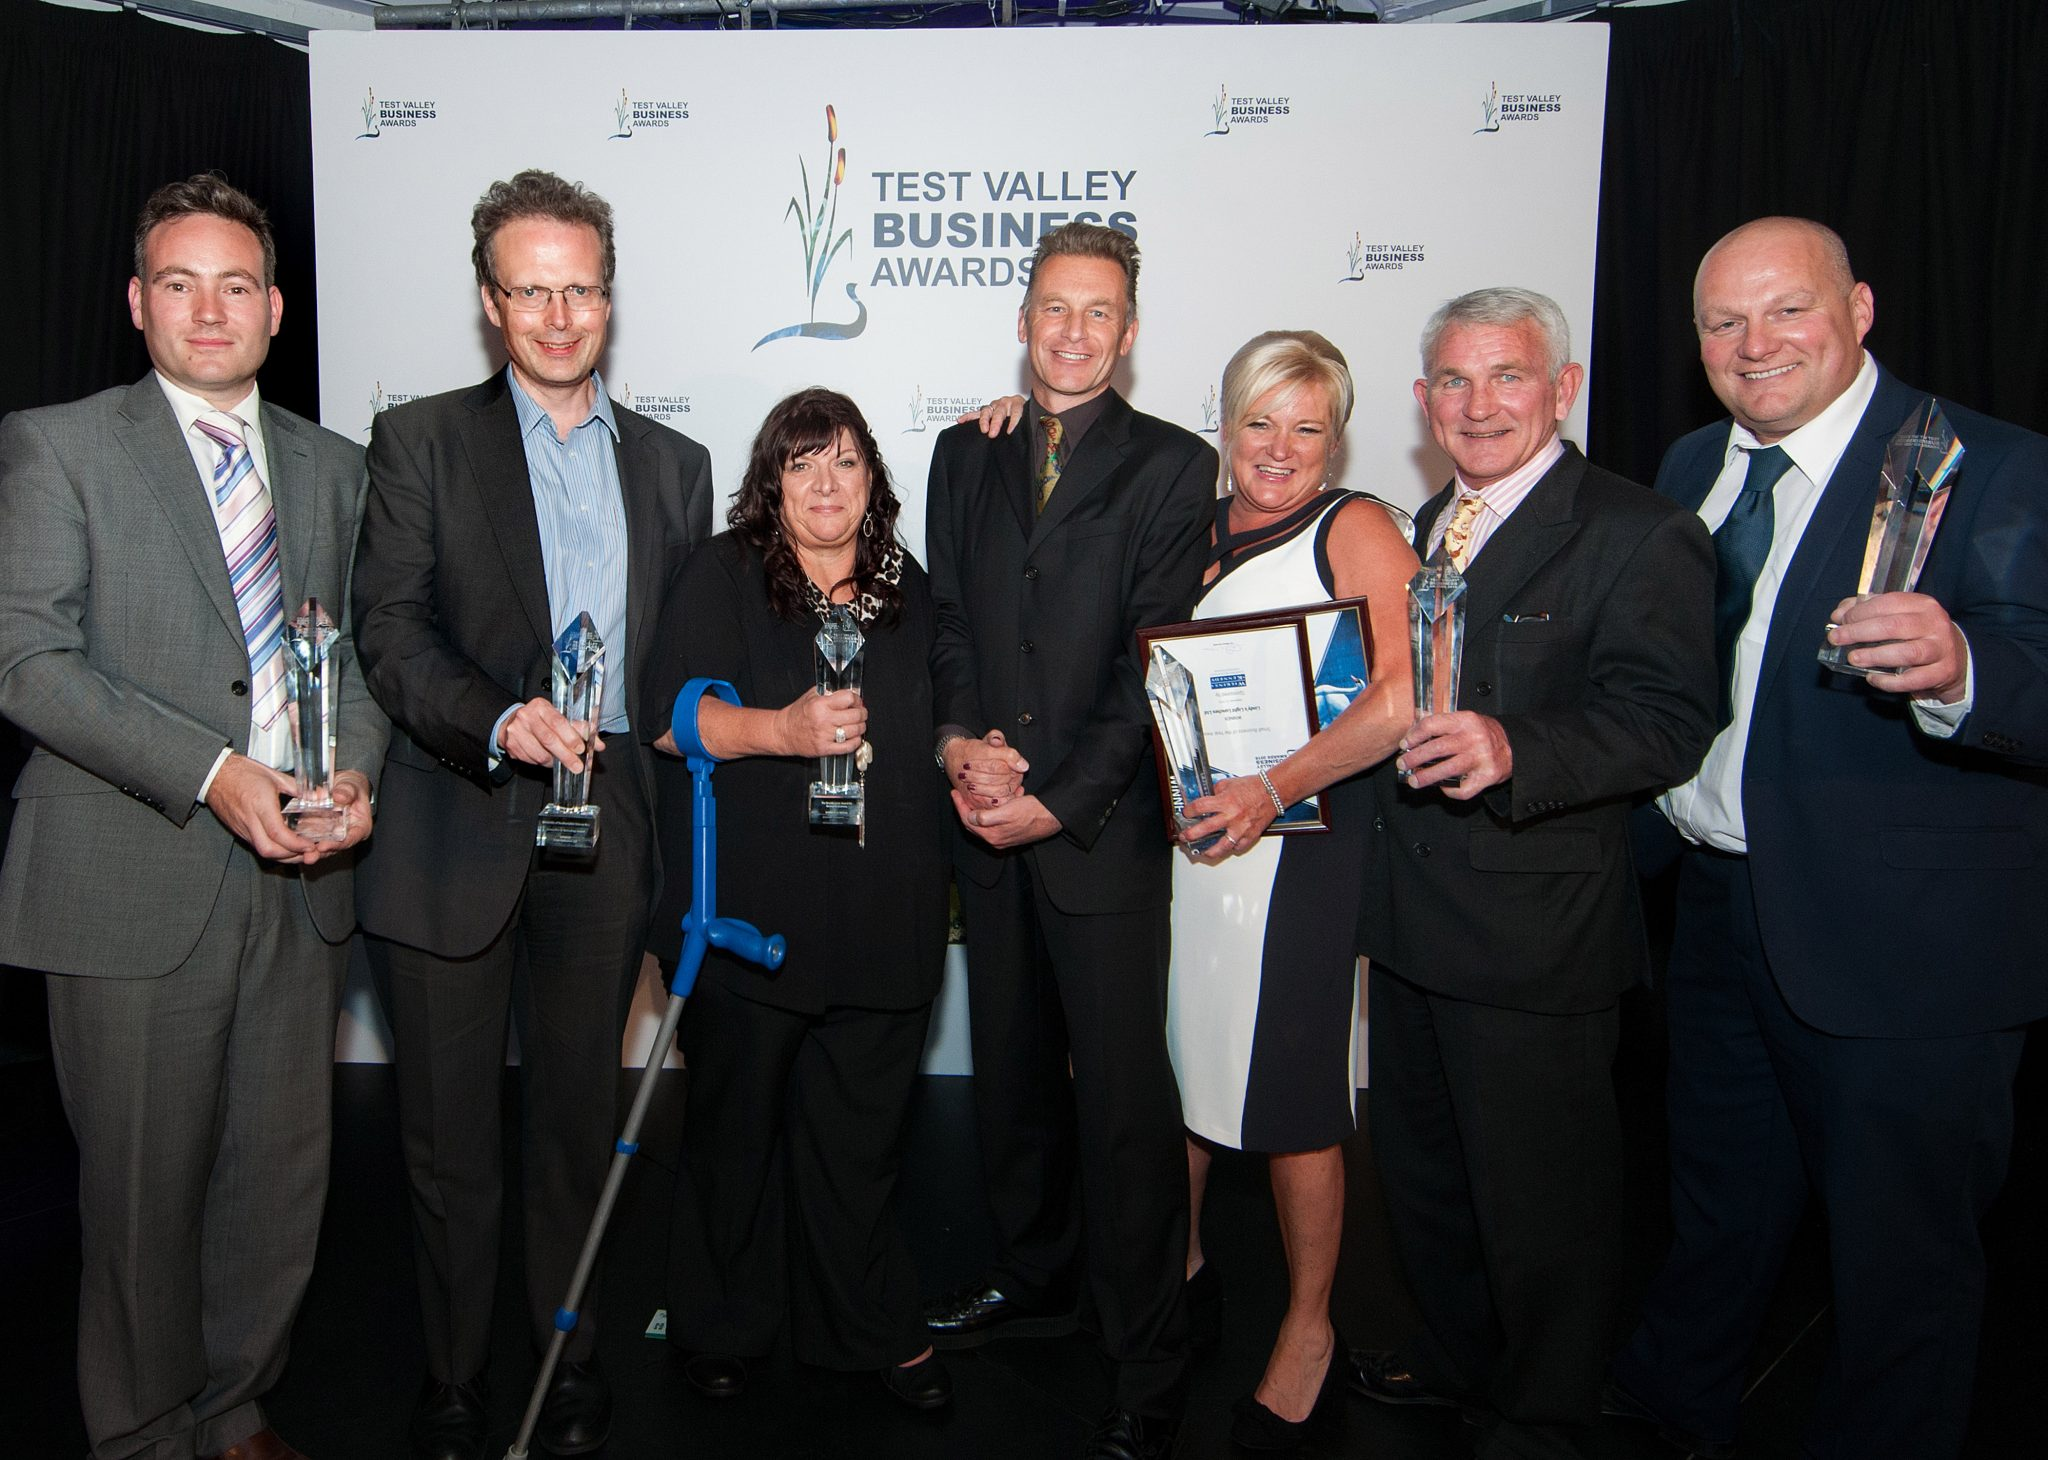 Local Romsey News | Area's Most Successful Businesses Celebrated at Test Valley Business Awards 2016